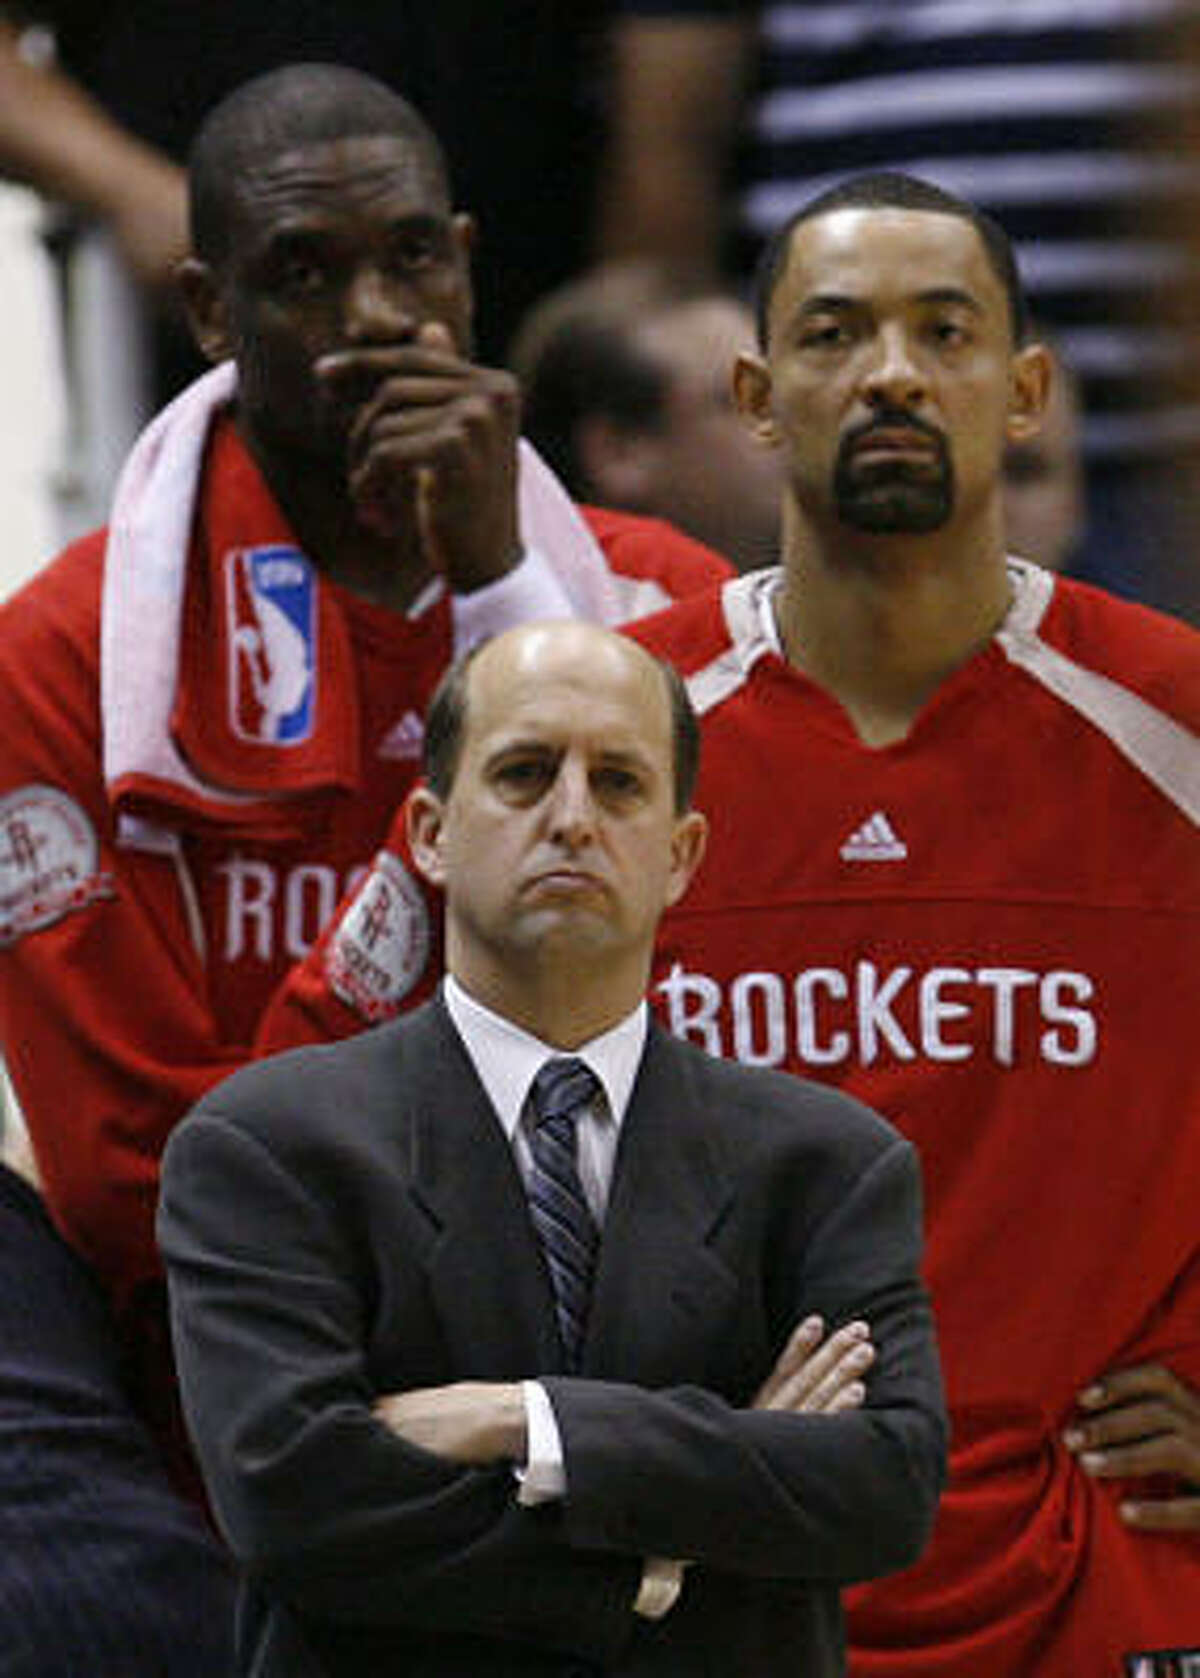 Jeff Van GundyYear Before, 2002-2003: 43-39. Van Gundy's First Year, 2003-2004: 45-37 Jeff Van Gundy became the Rockets head coach in 2003, finishing the 2003-2004 season with a 45-37 record. Van Gundy took the Rockets to the playoffs three out of the four seasons he was the head coach finishing with a 7-12 record in the playoffs.